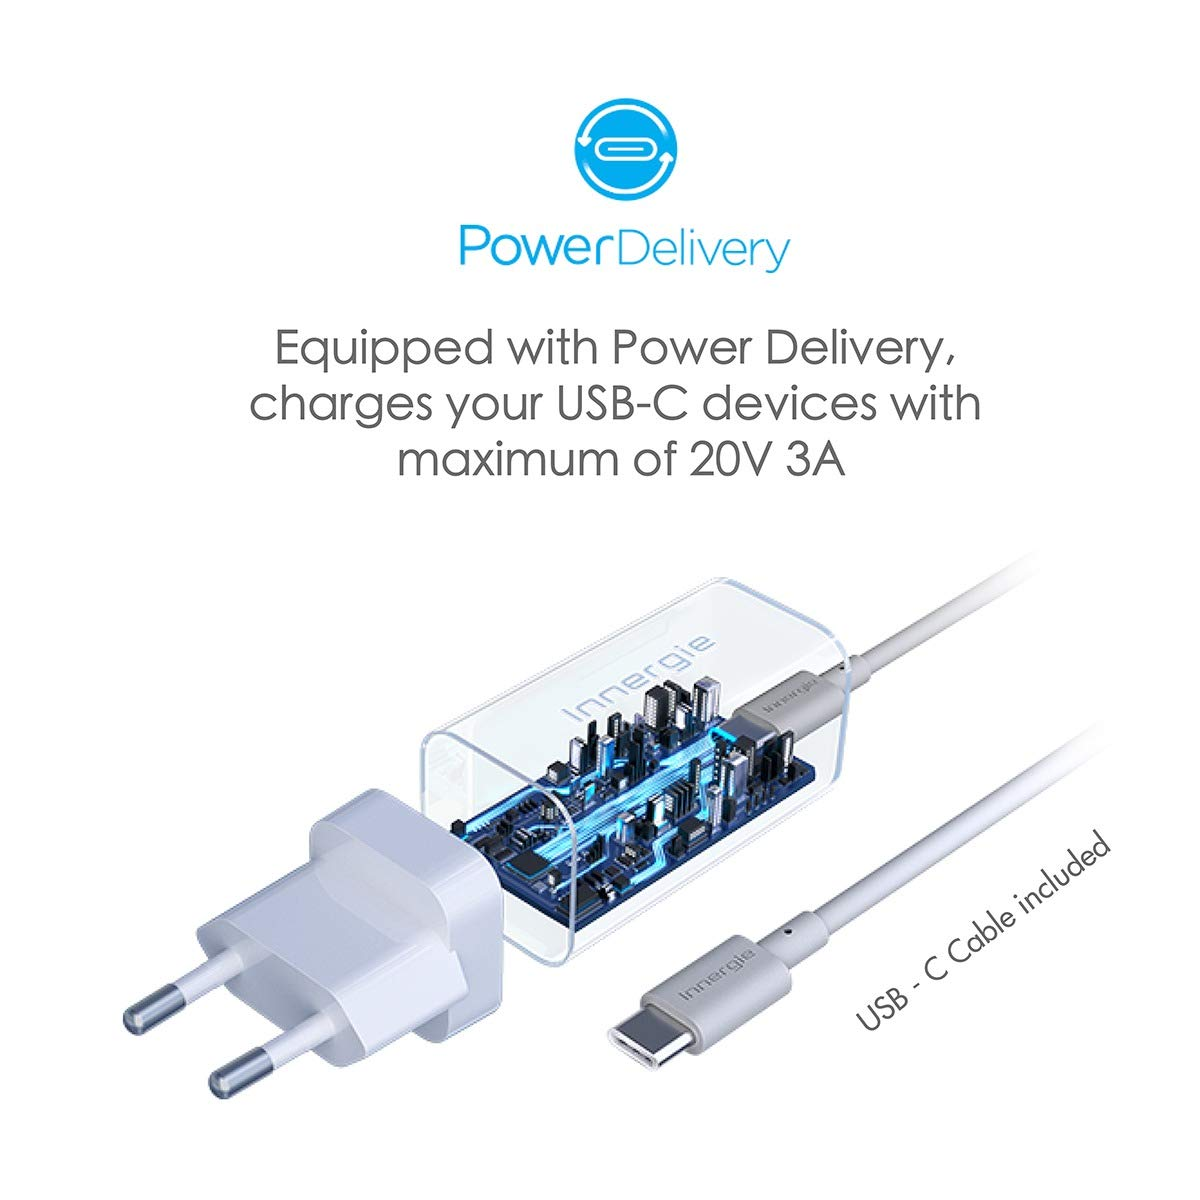 Innergie USB C Charger, 60W International Laptop Charger, World's Smallest USB-C Power Adapter with Interchangeable EU/UK Plugs, for New MacBook Pro/MacBook Air, Supports PowerDelivery USB PD [60C] by Innergie (Image #4)